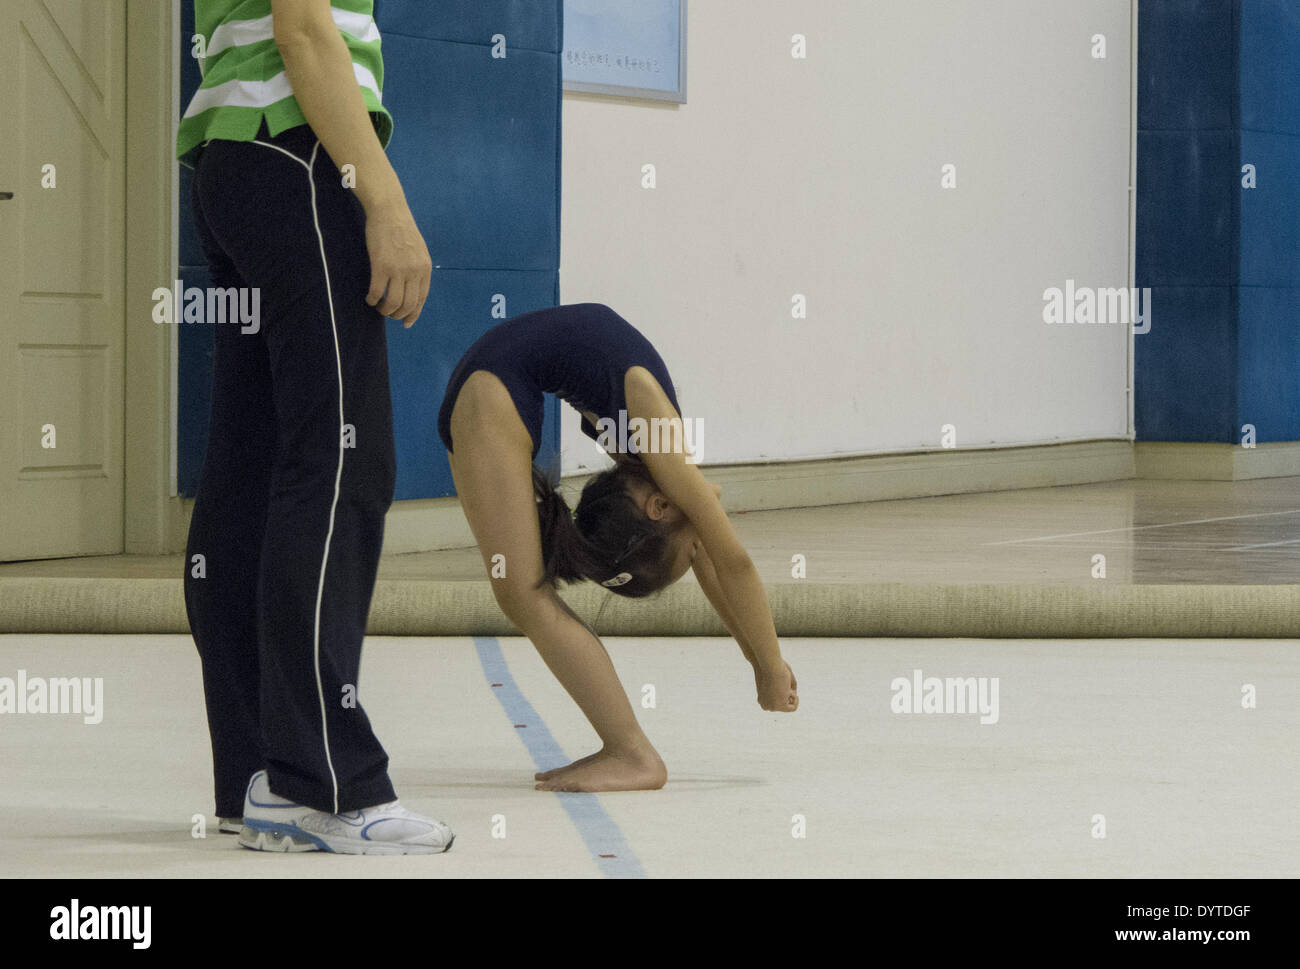 Gynmastics Stock Photos & Gynmastics Stock Images - Alamy